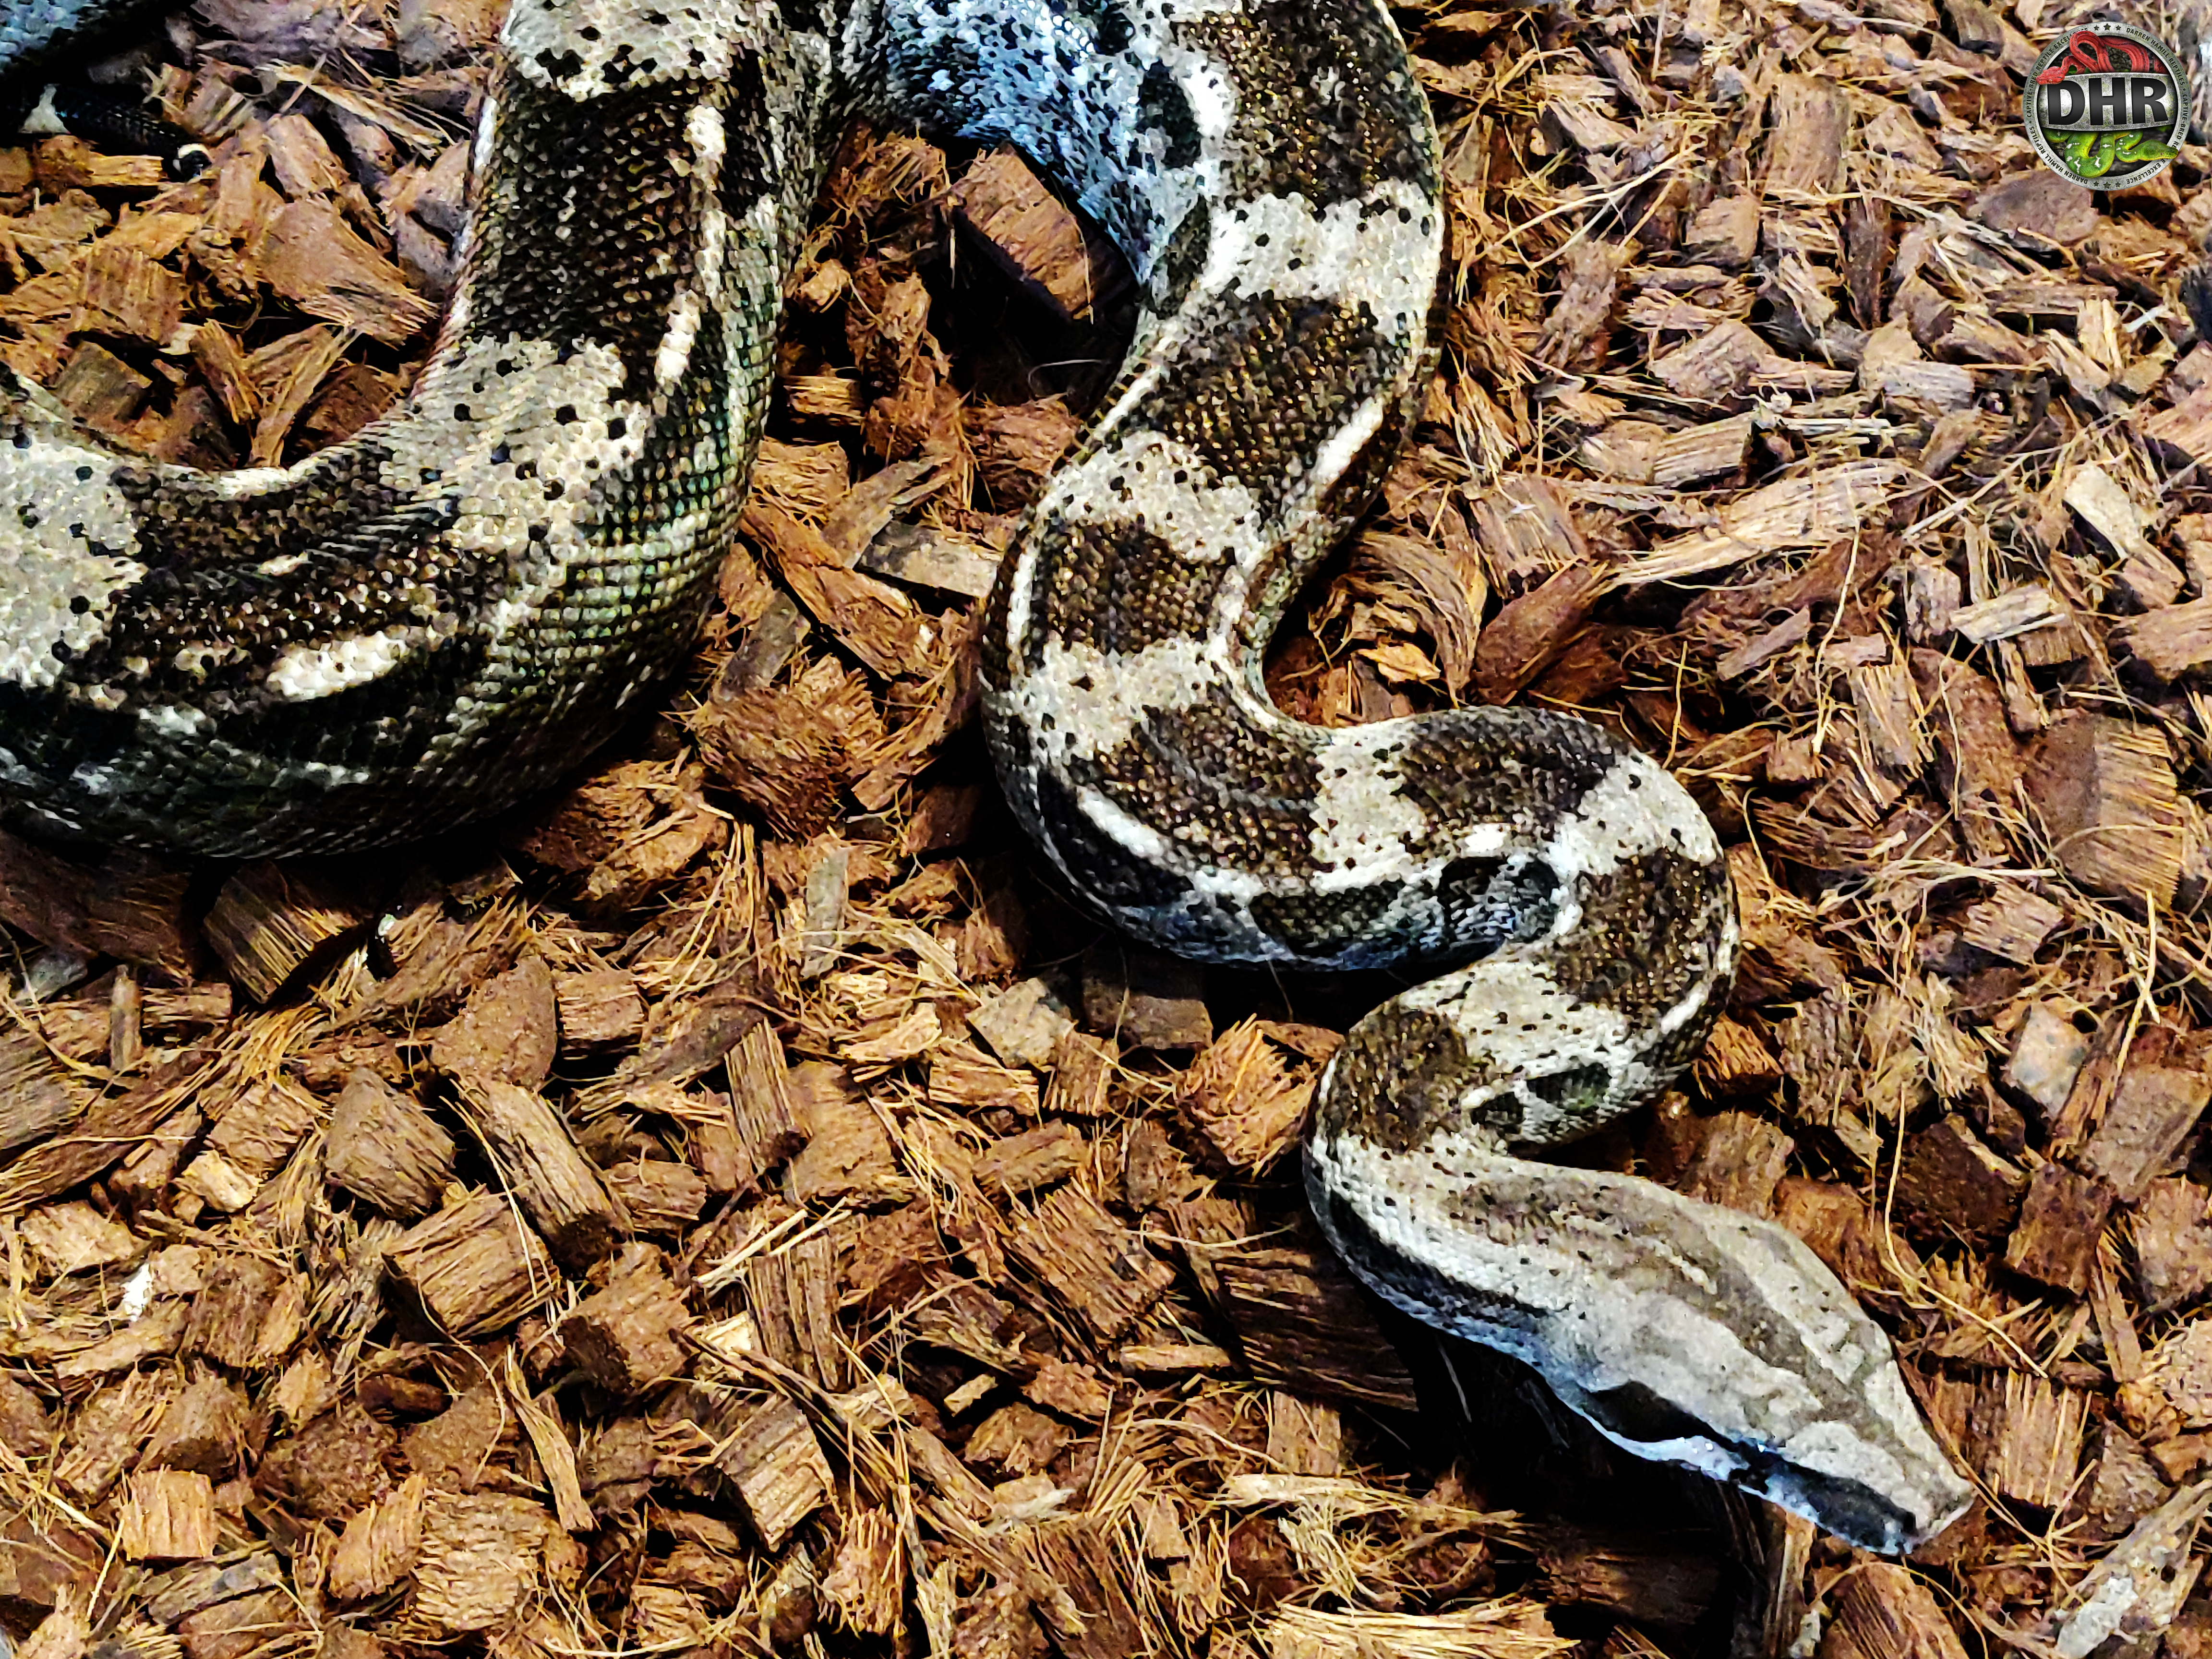 Heading into the weekend we thought we would share a picture of a Caulker Cay Boa